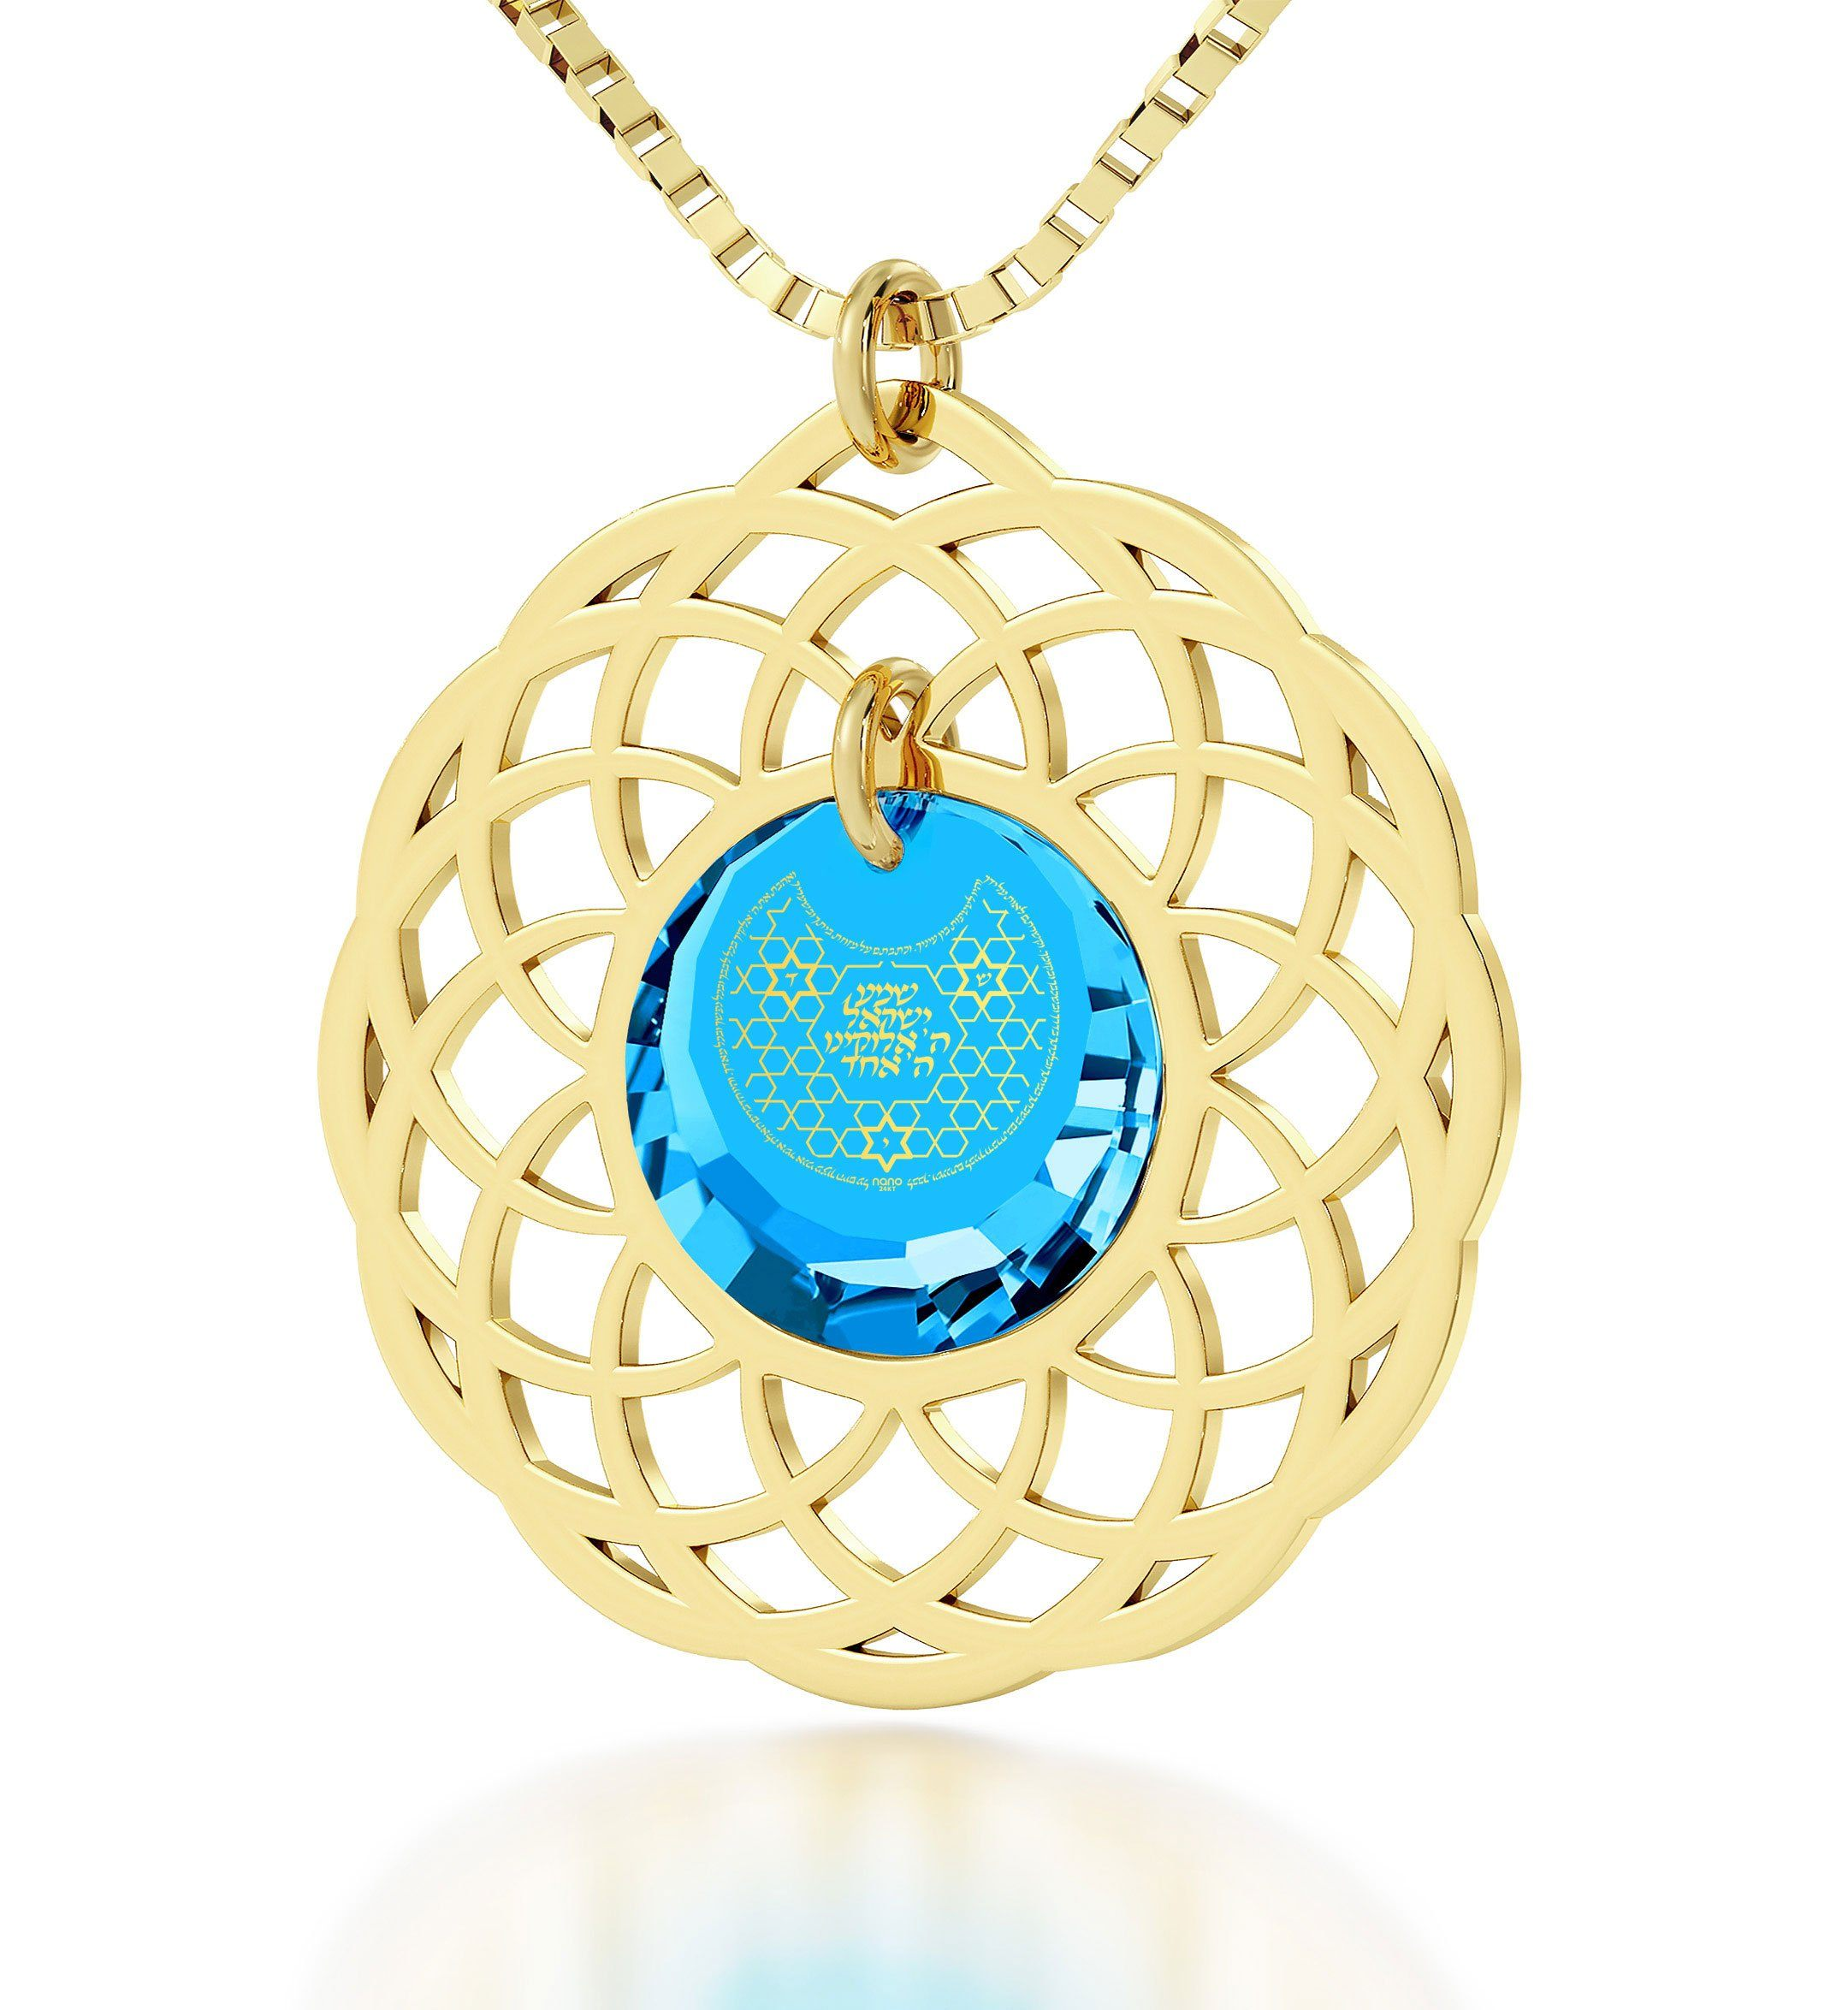 "Mandala Jewelry with ""Shema Yisrael"" Engraved in 24k, Israel Necklace with Blue Topaz Stone. Judaica Gifts"